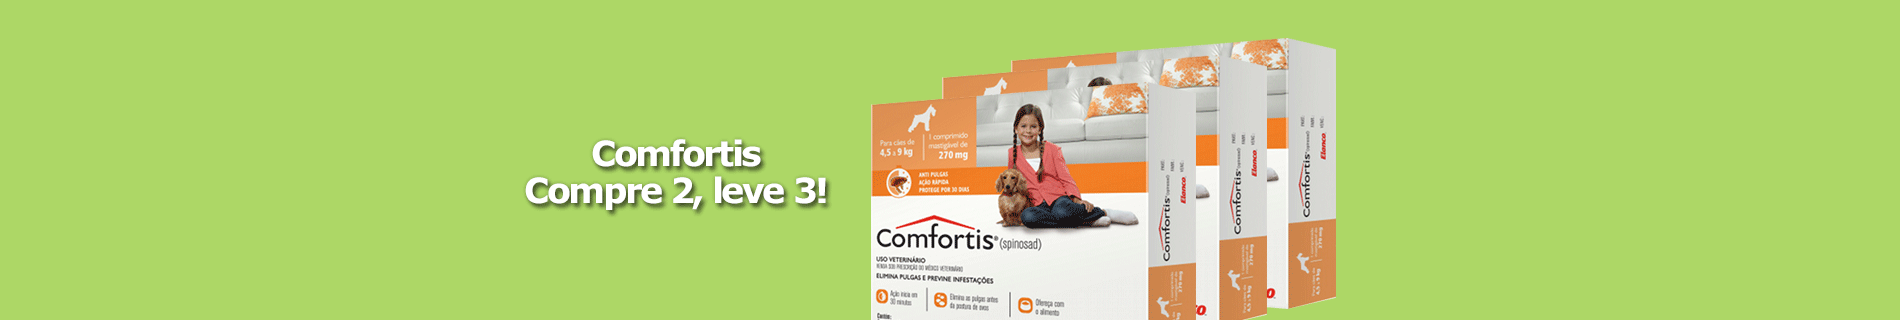 Comfortis Compre 2, Leve 3